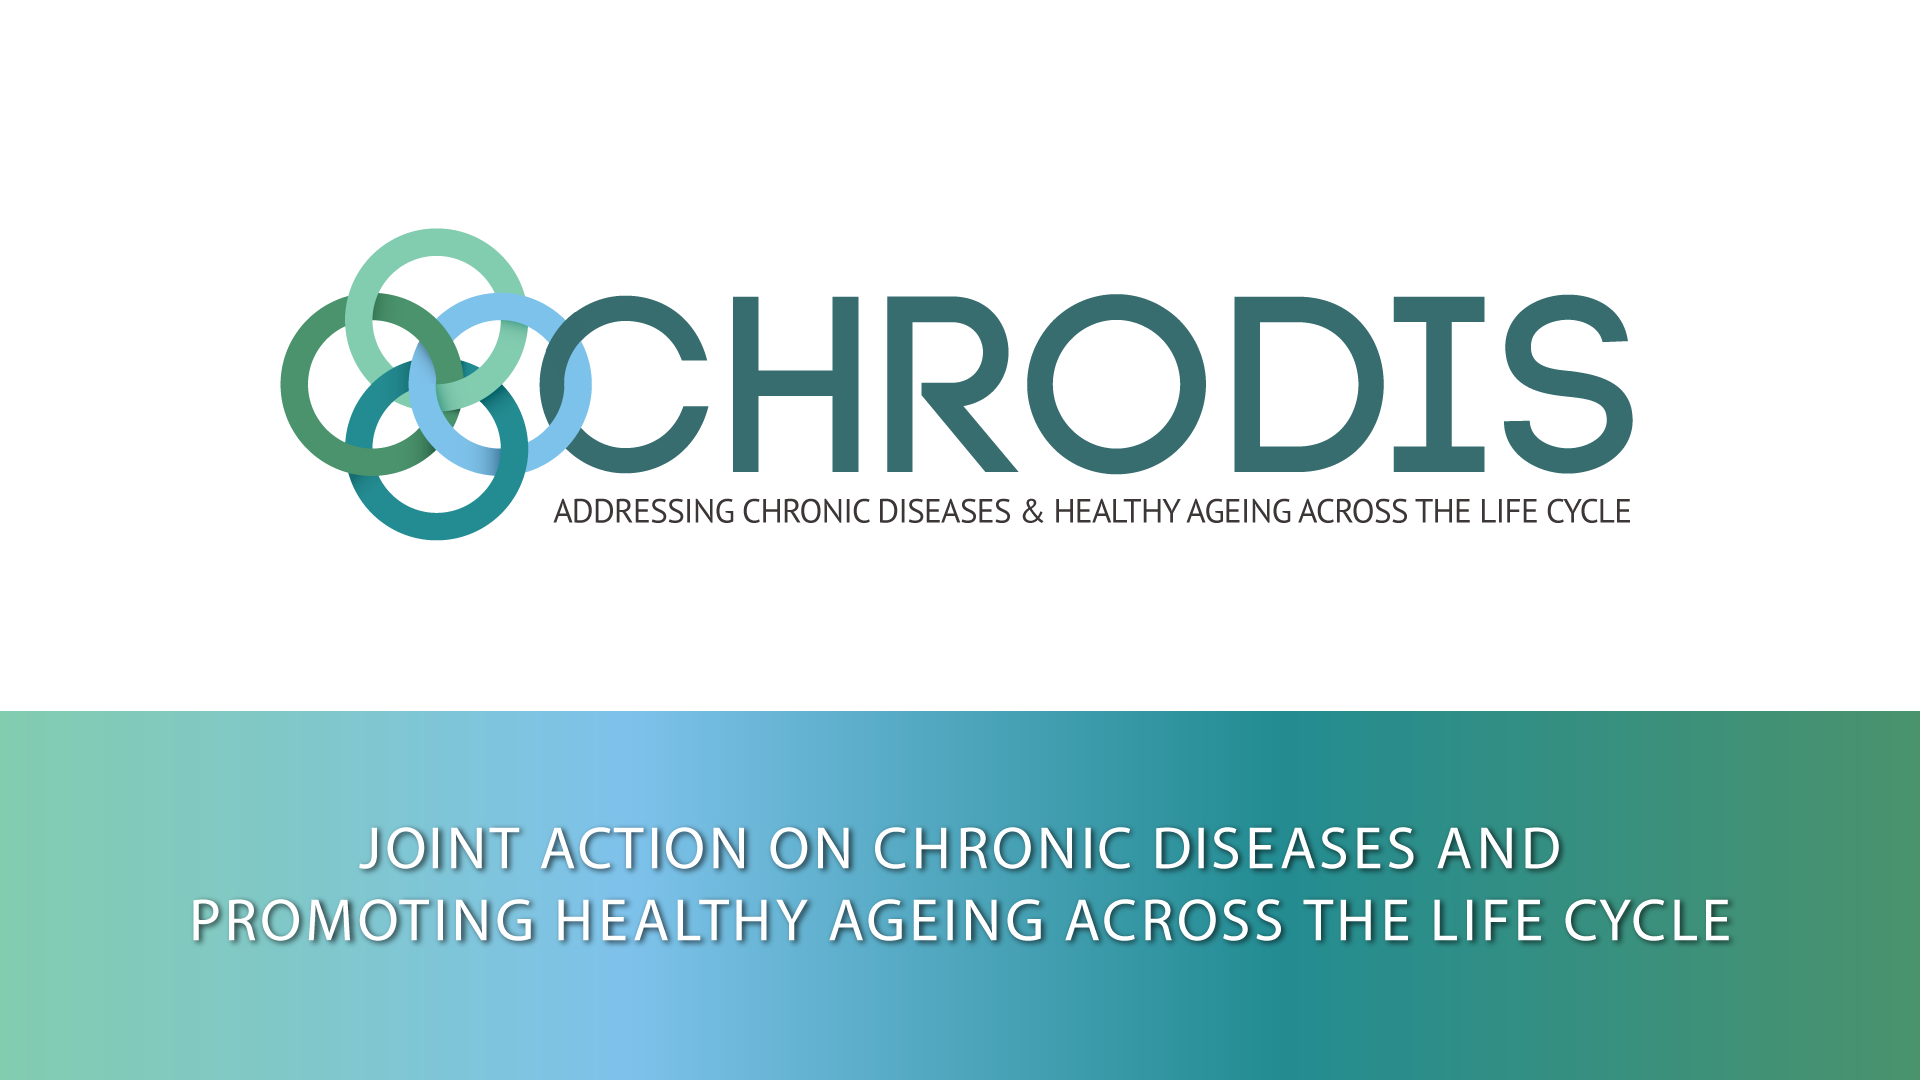 Chrodis project logo